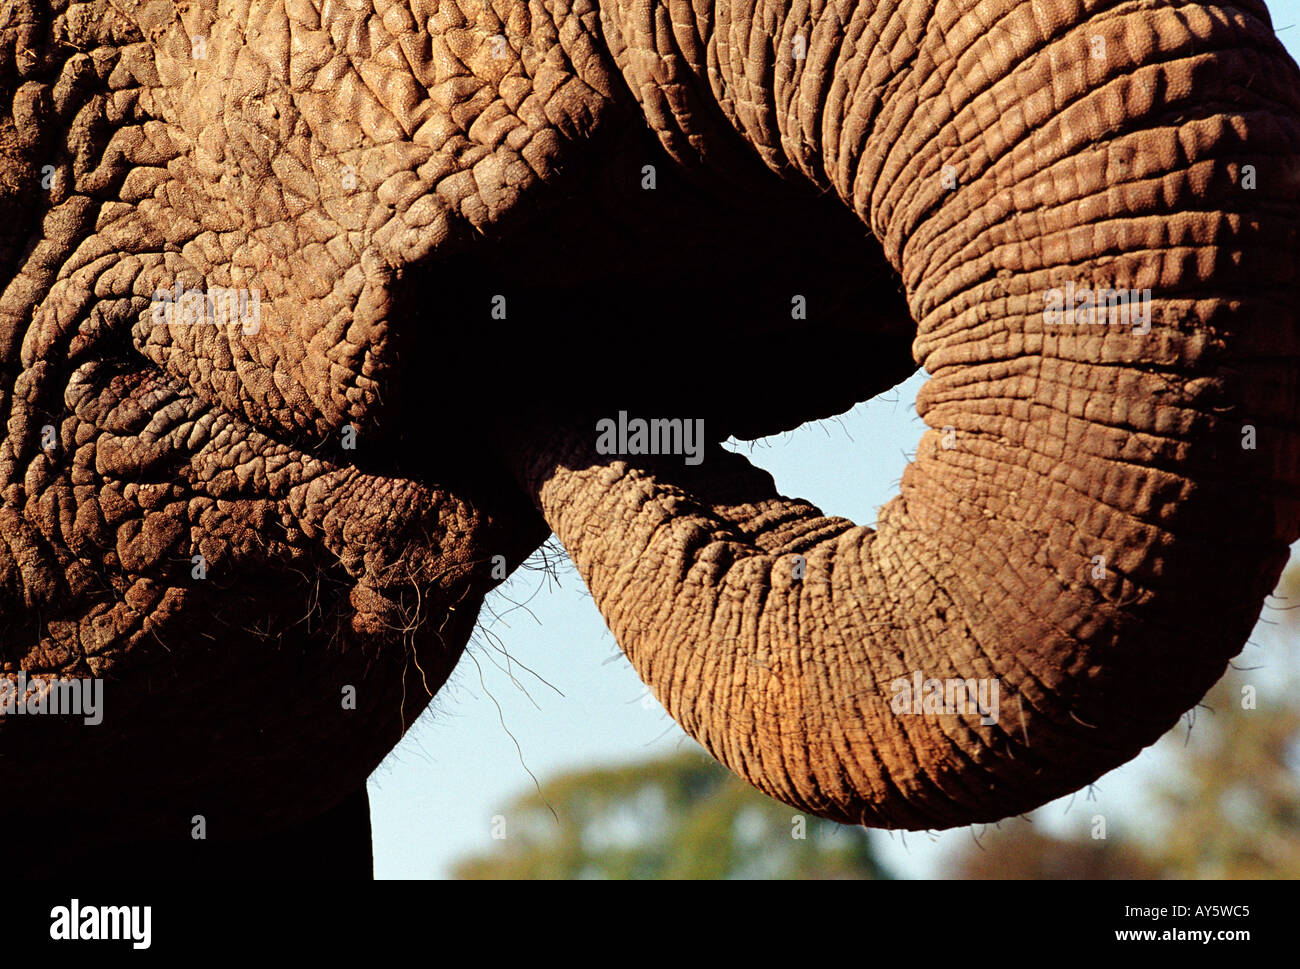 Elephant Curving Stock Photos & Elephant Curving Stock Images - Alamy